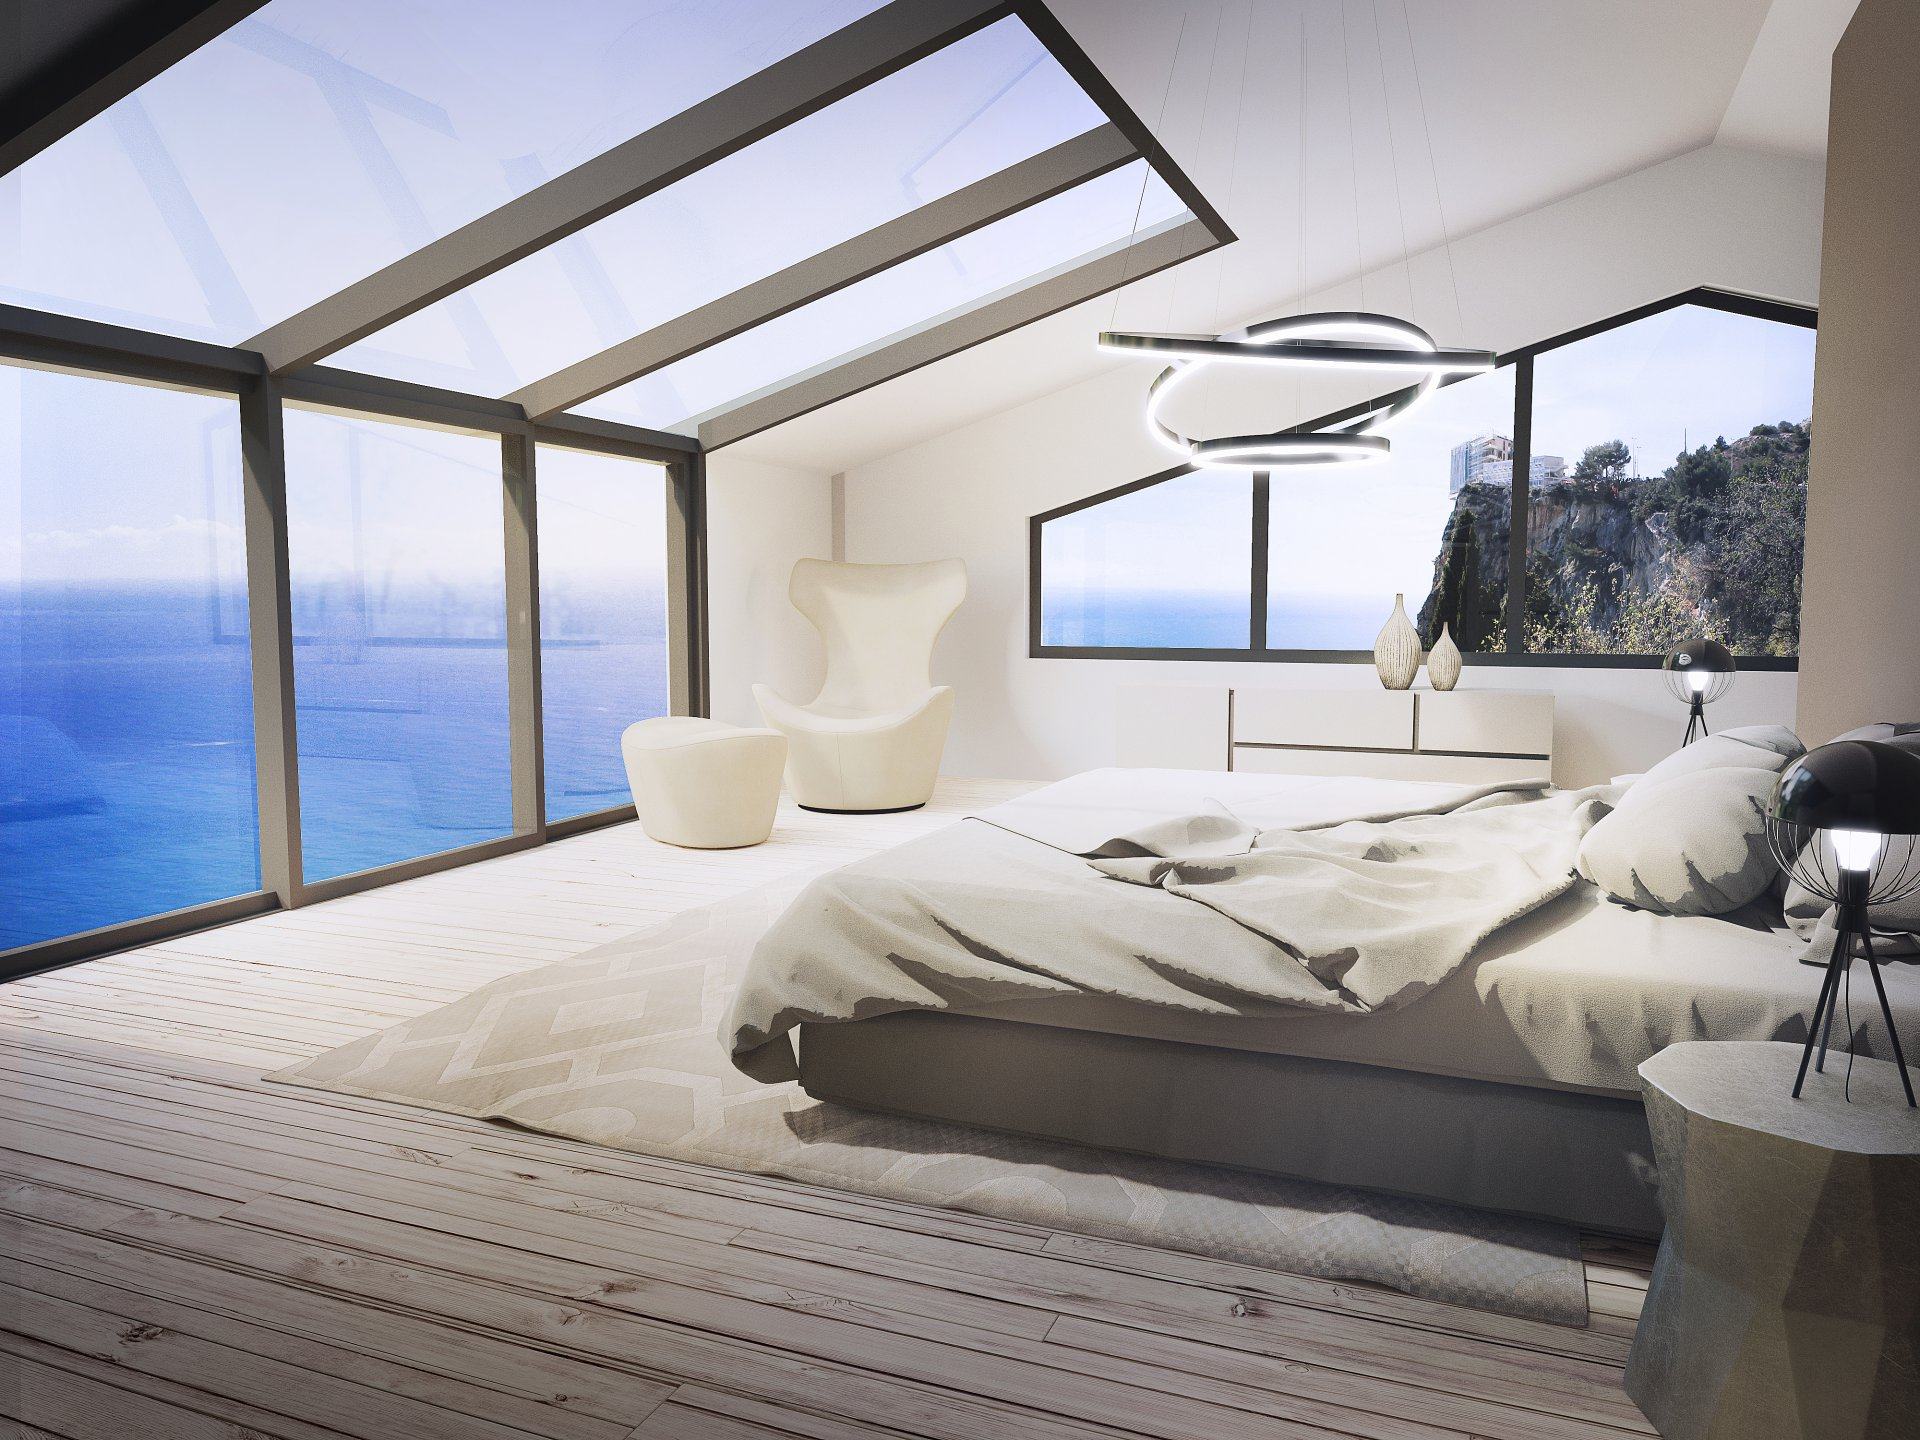 Bedroom seaview on the vista palace